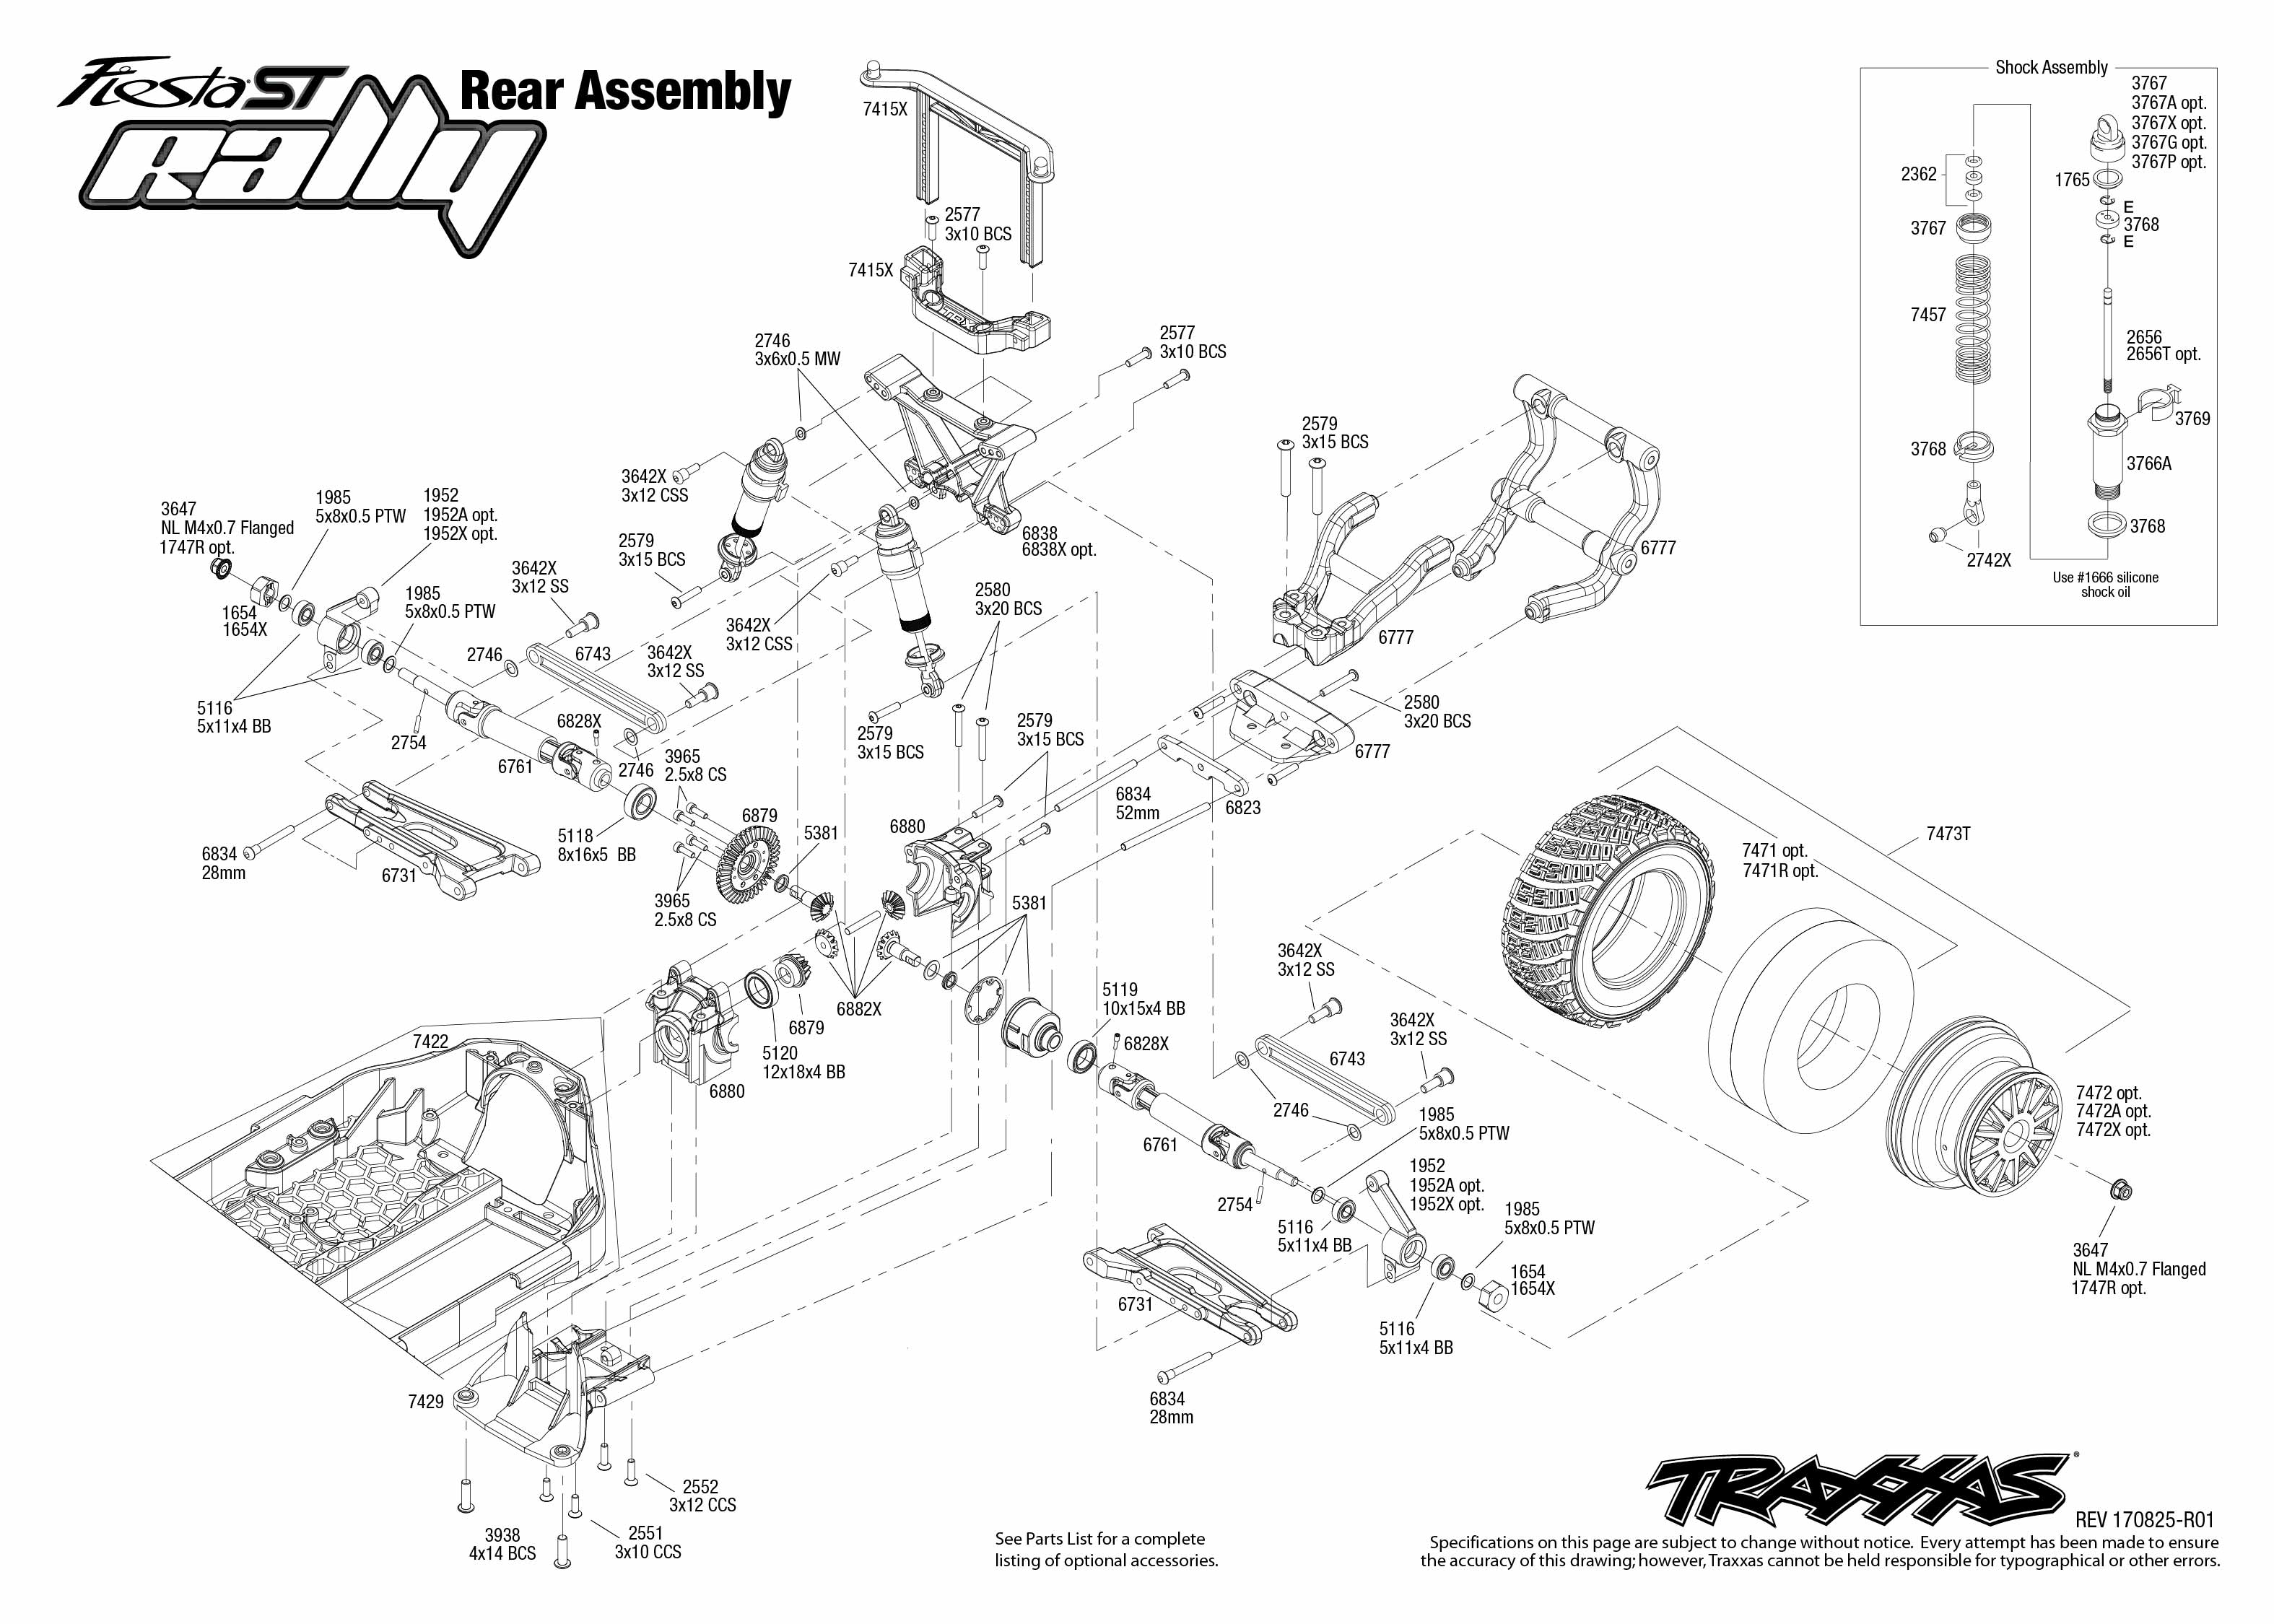 Ford Fiesta ST Rally (74054-6) Rear Assembly Exploded View